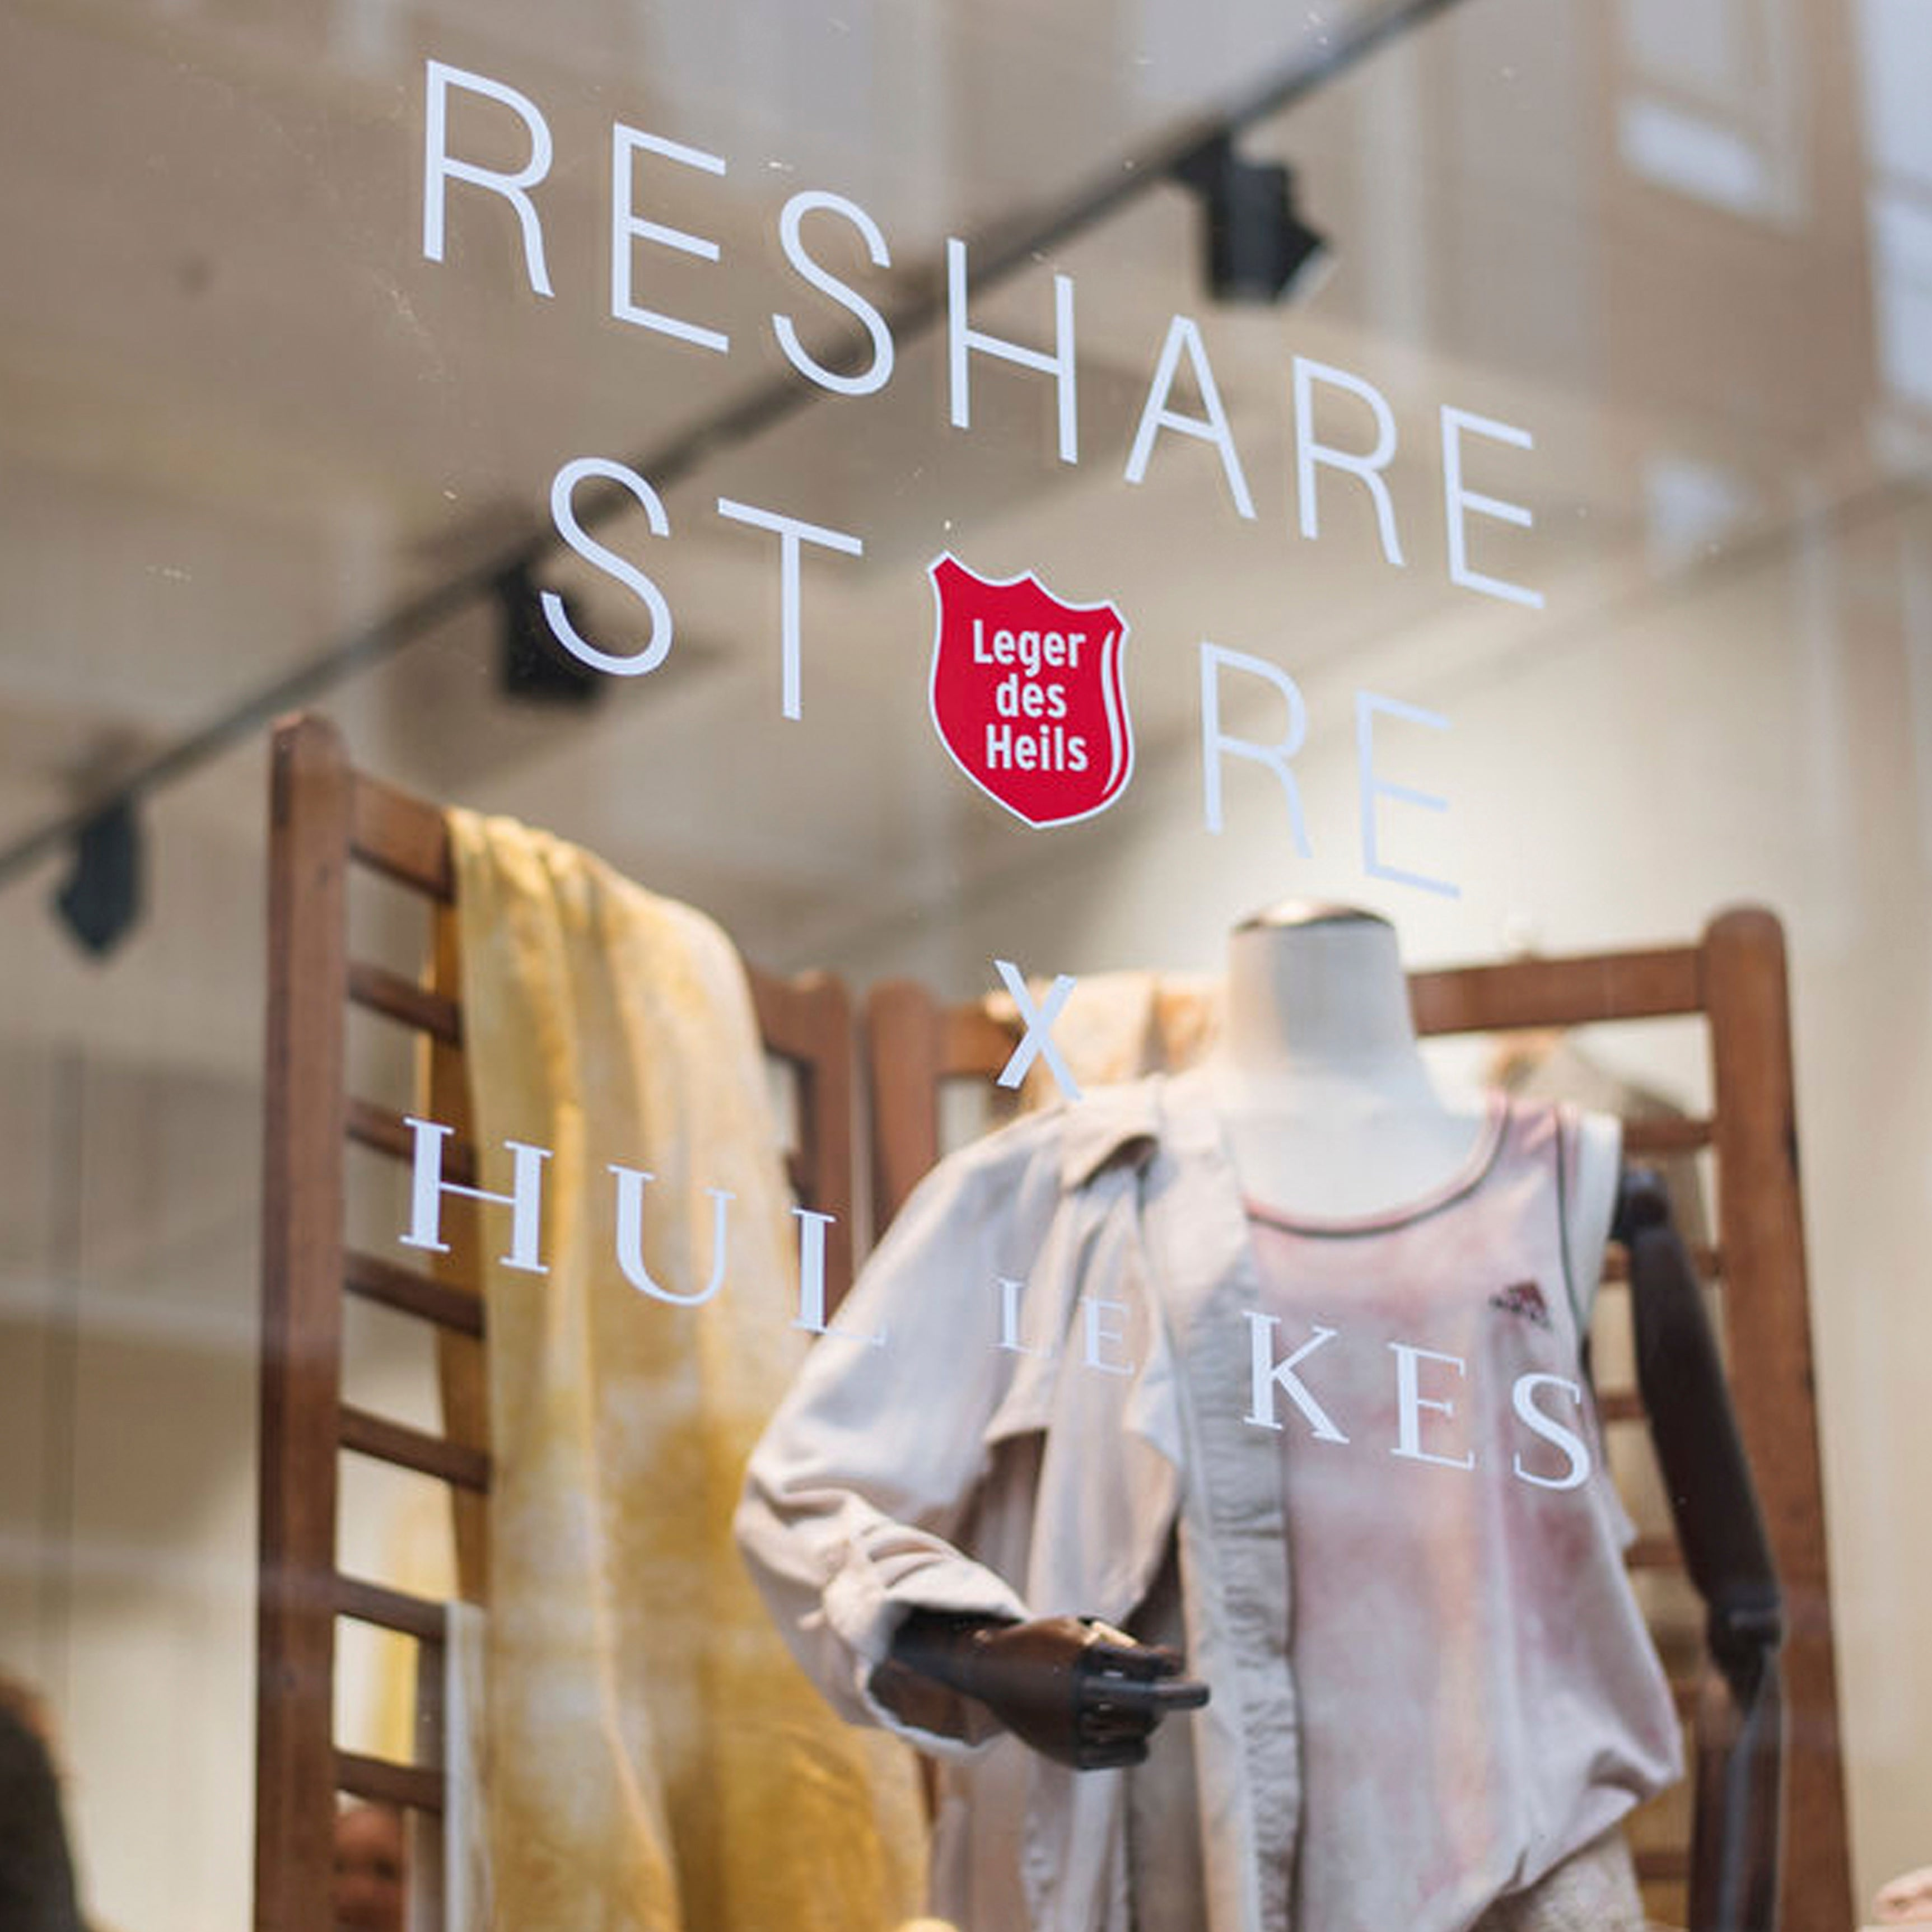 ReShare x Hul le Kes pop-up store opening